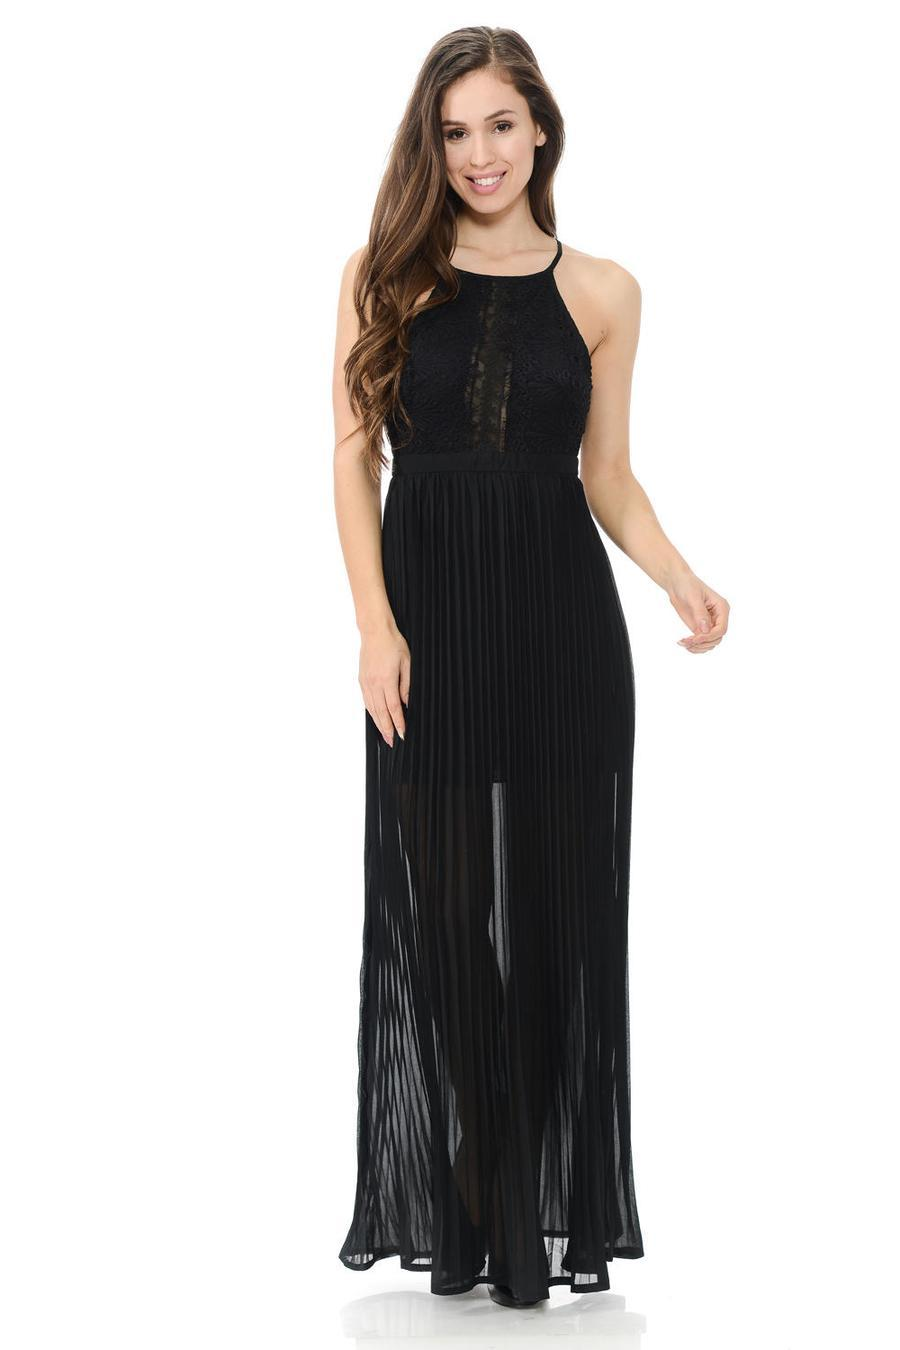 https://transparent-things.com - Sweet Look Fashion Women's Dress - Transparent-Things - #transparentthingsstore